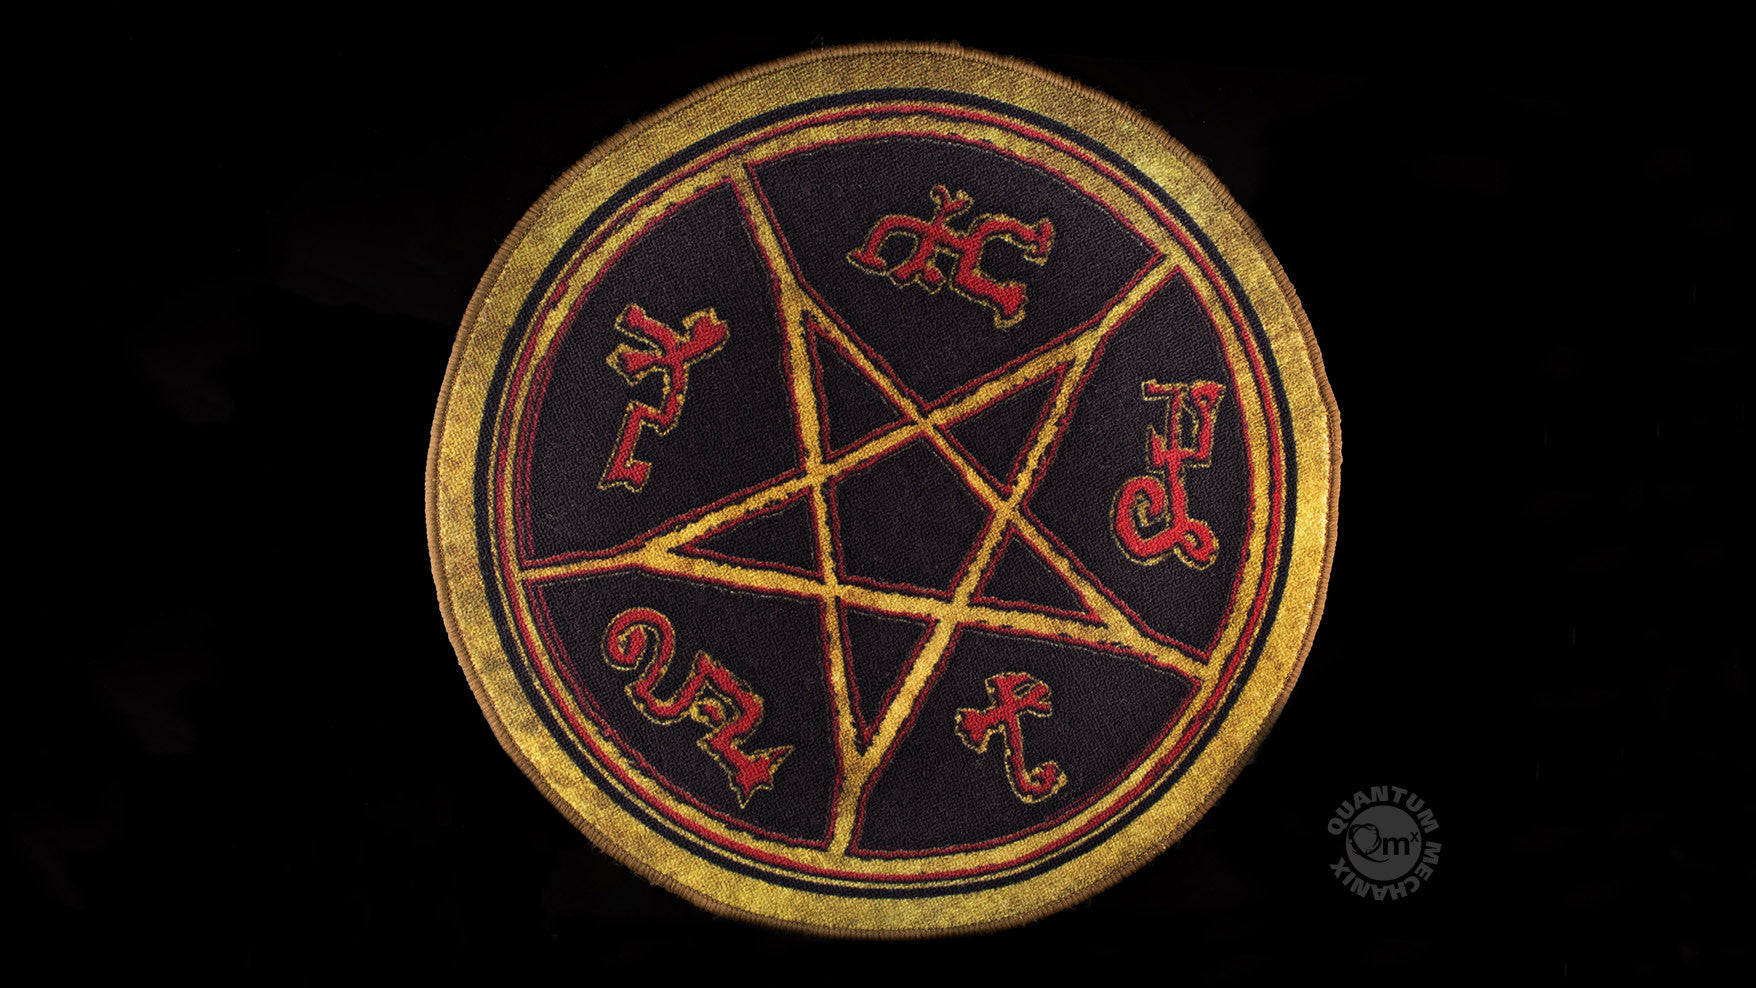 Supernatural Devils Trap Doormat Quantum Mechanix